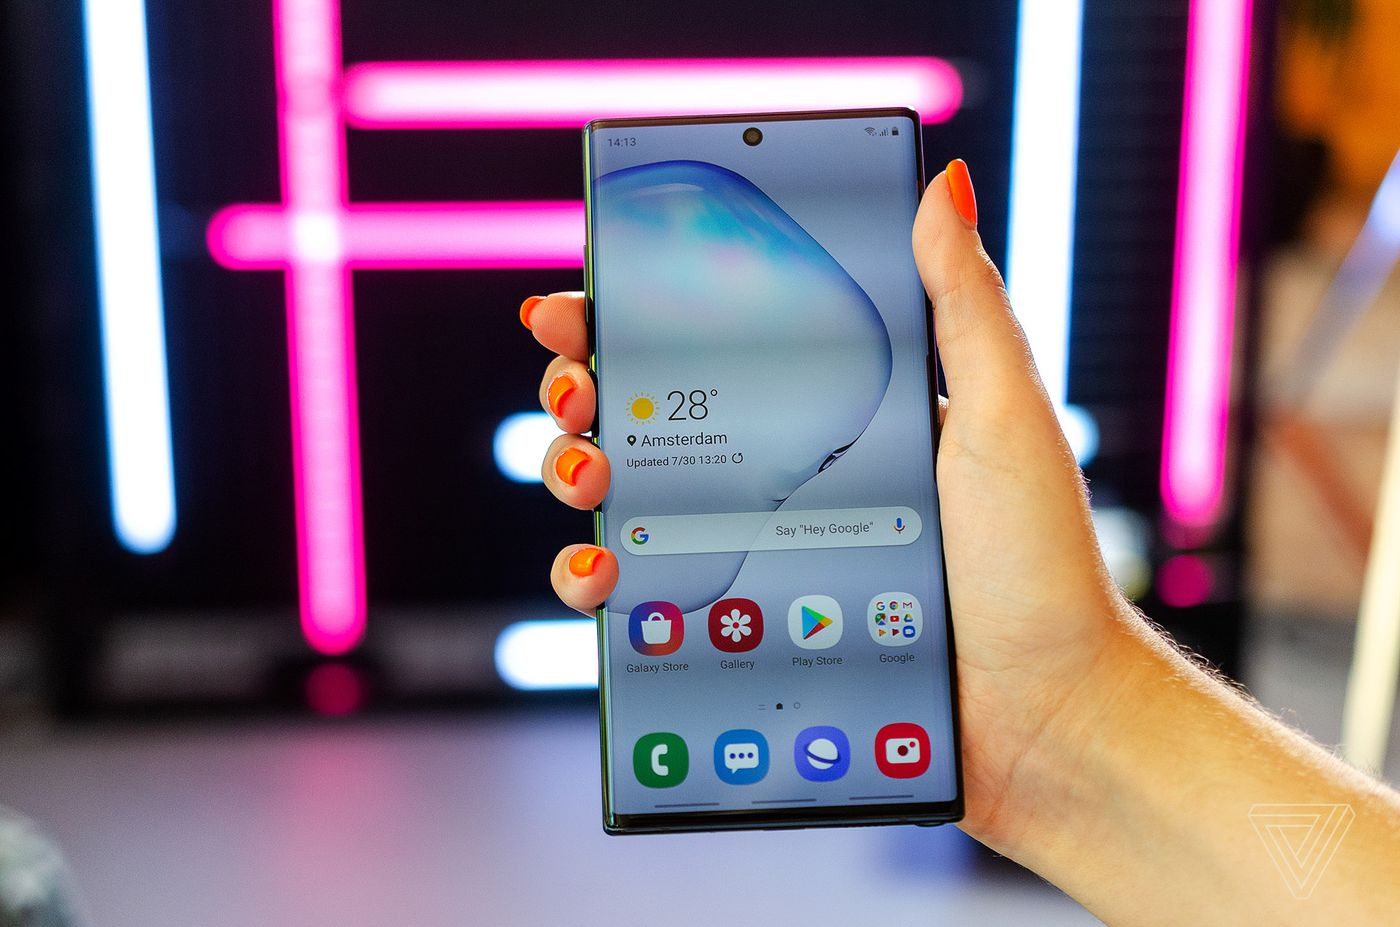 Samsung Galaxy Note 10: price, carriers and how to preorder